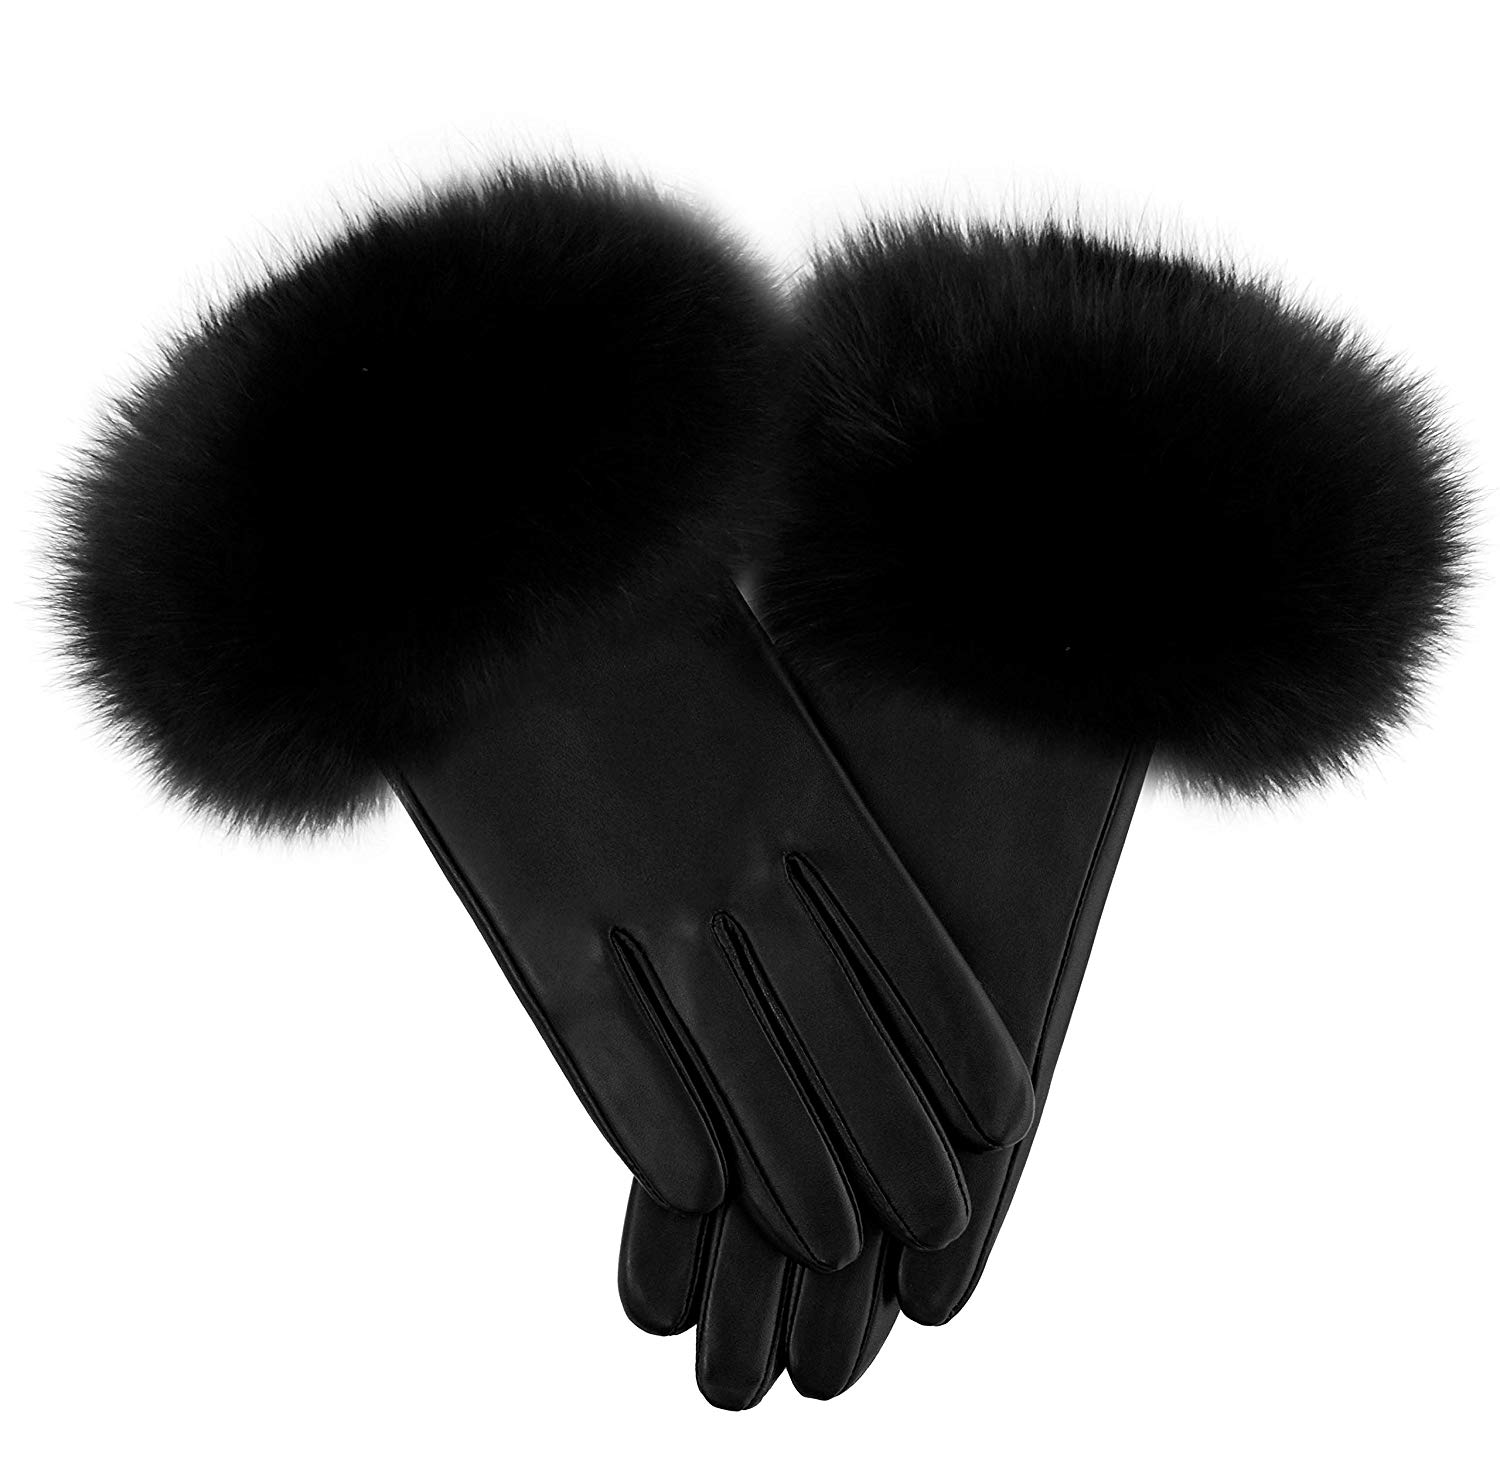 223ab077dd7 Get Quotations · Fur Traders Womens Italian Lamb with Fox Trim Gloves By  Mithcie s Matchings